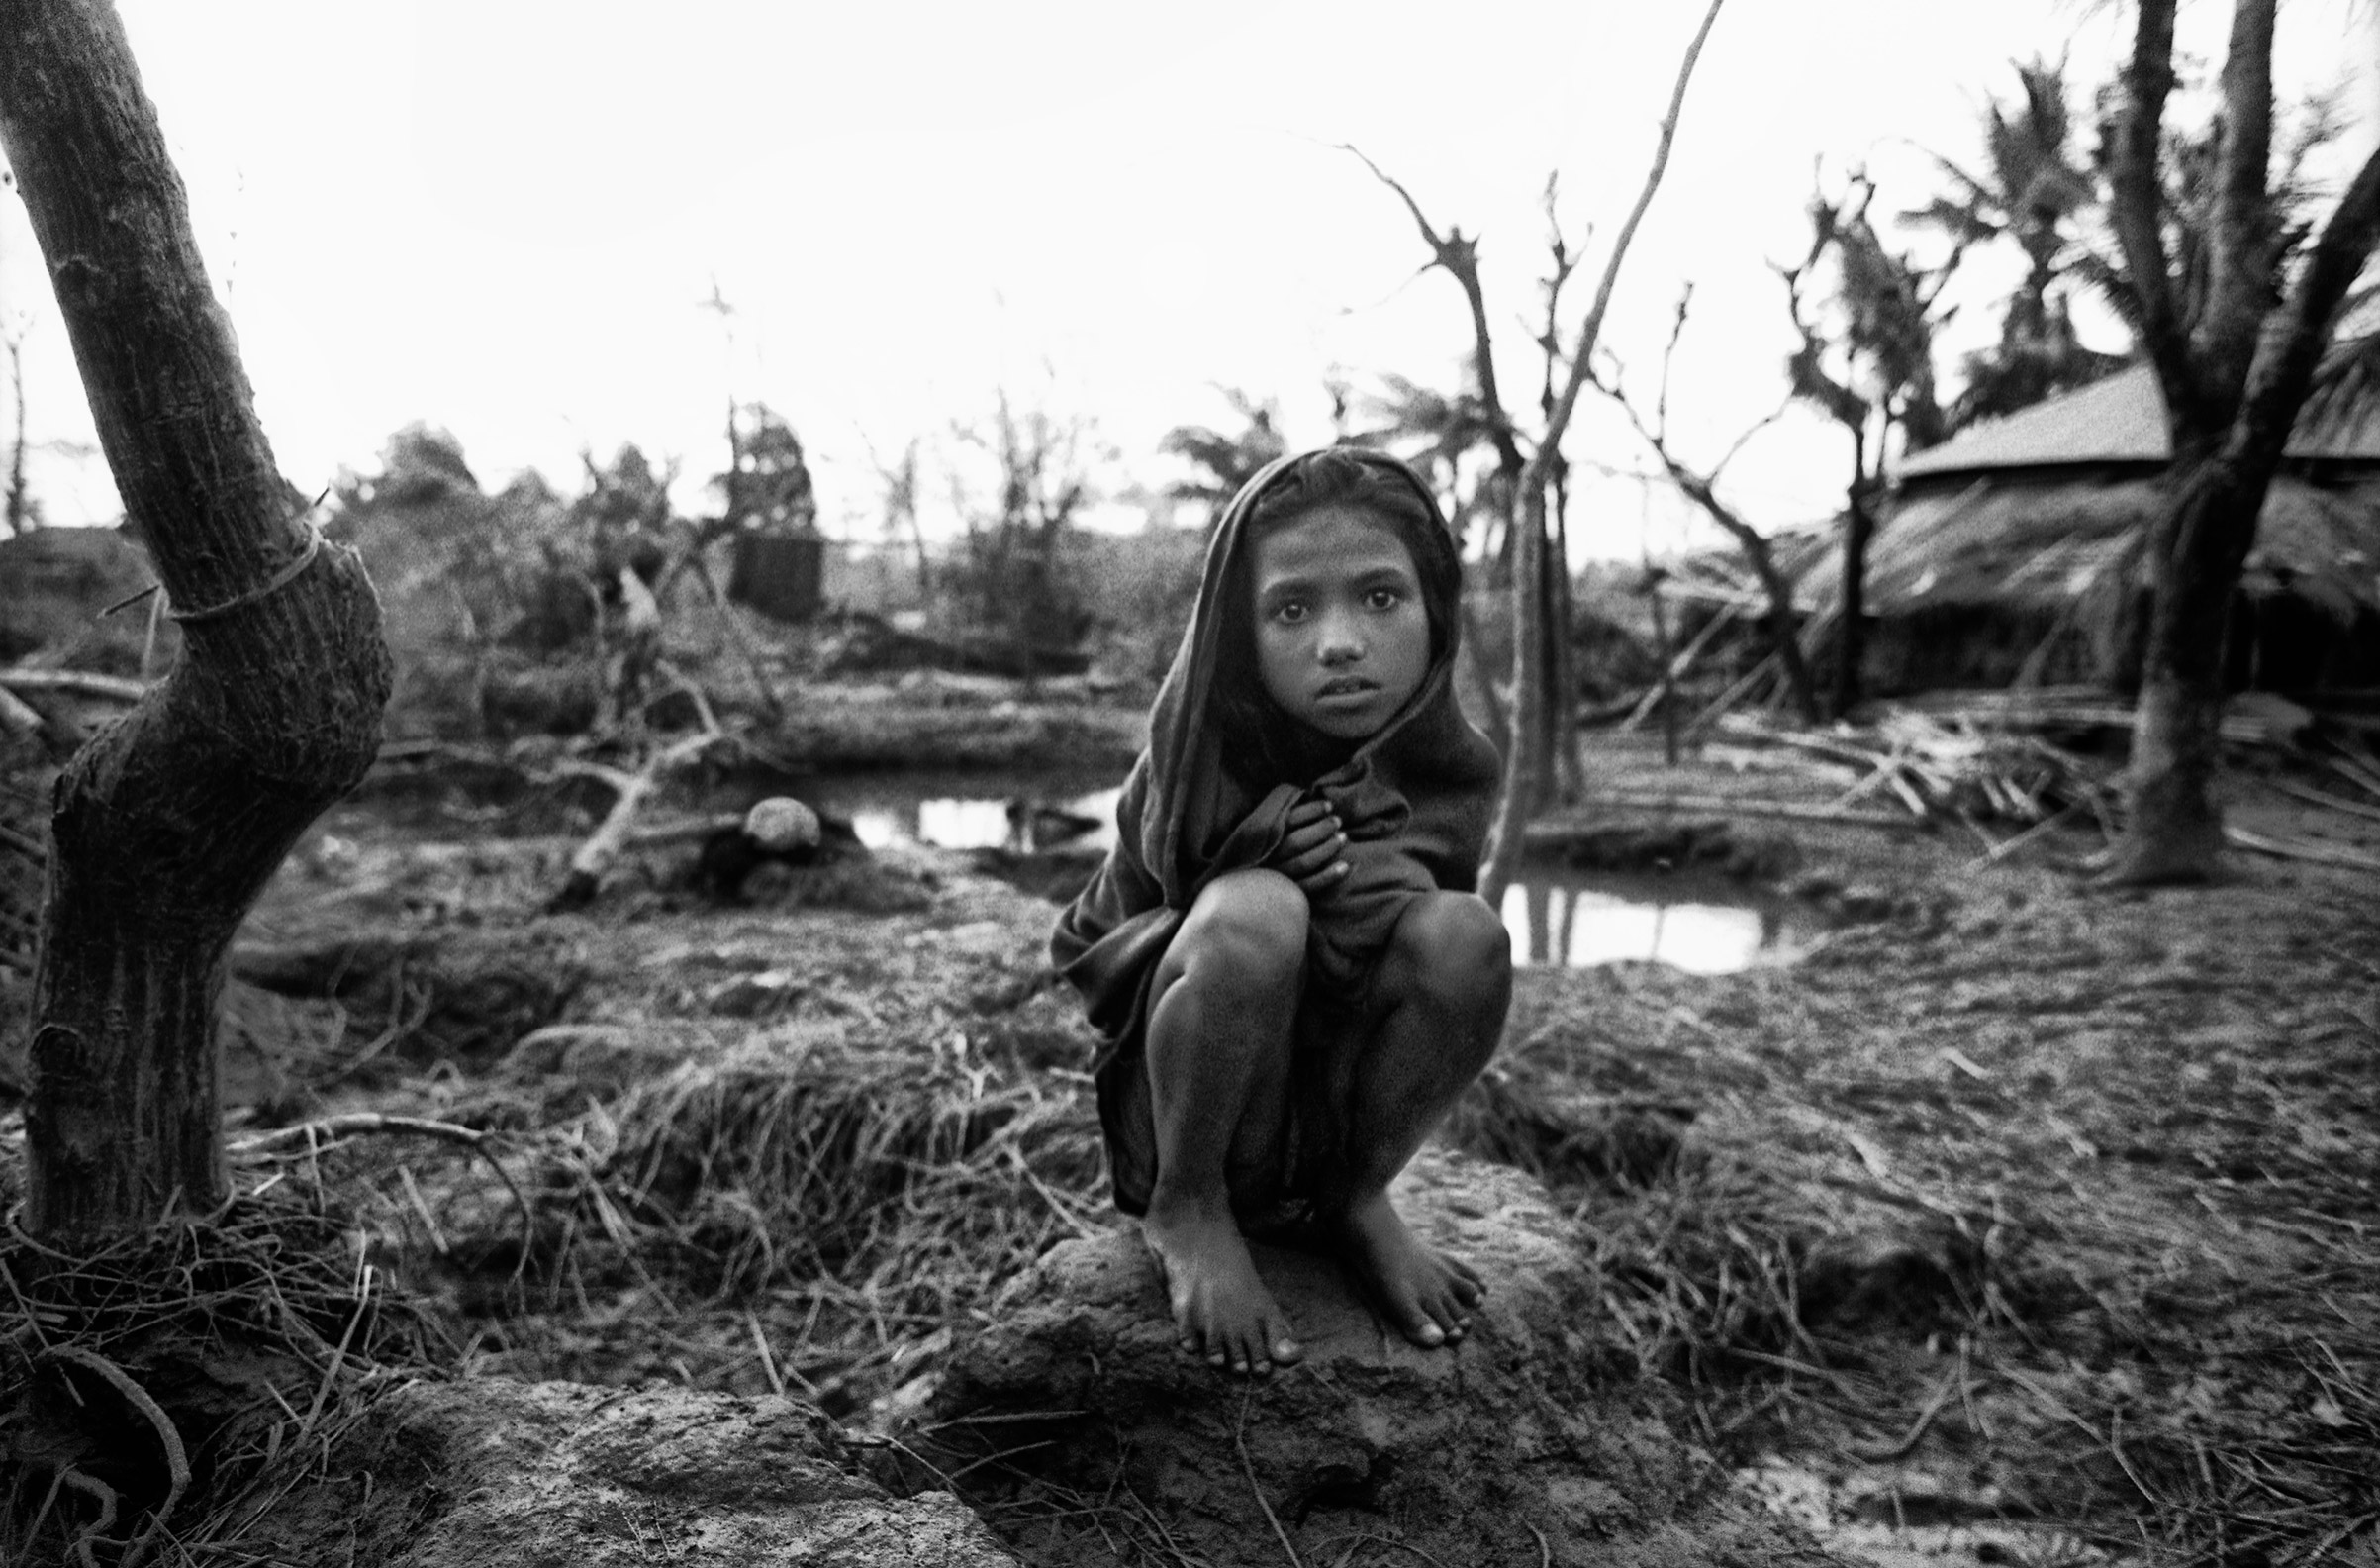 A girl crouches near the remains of her home in the aftermath of a deadly storm in Anwara, Chittagong, Bangladesh, 1991.